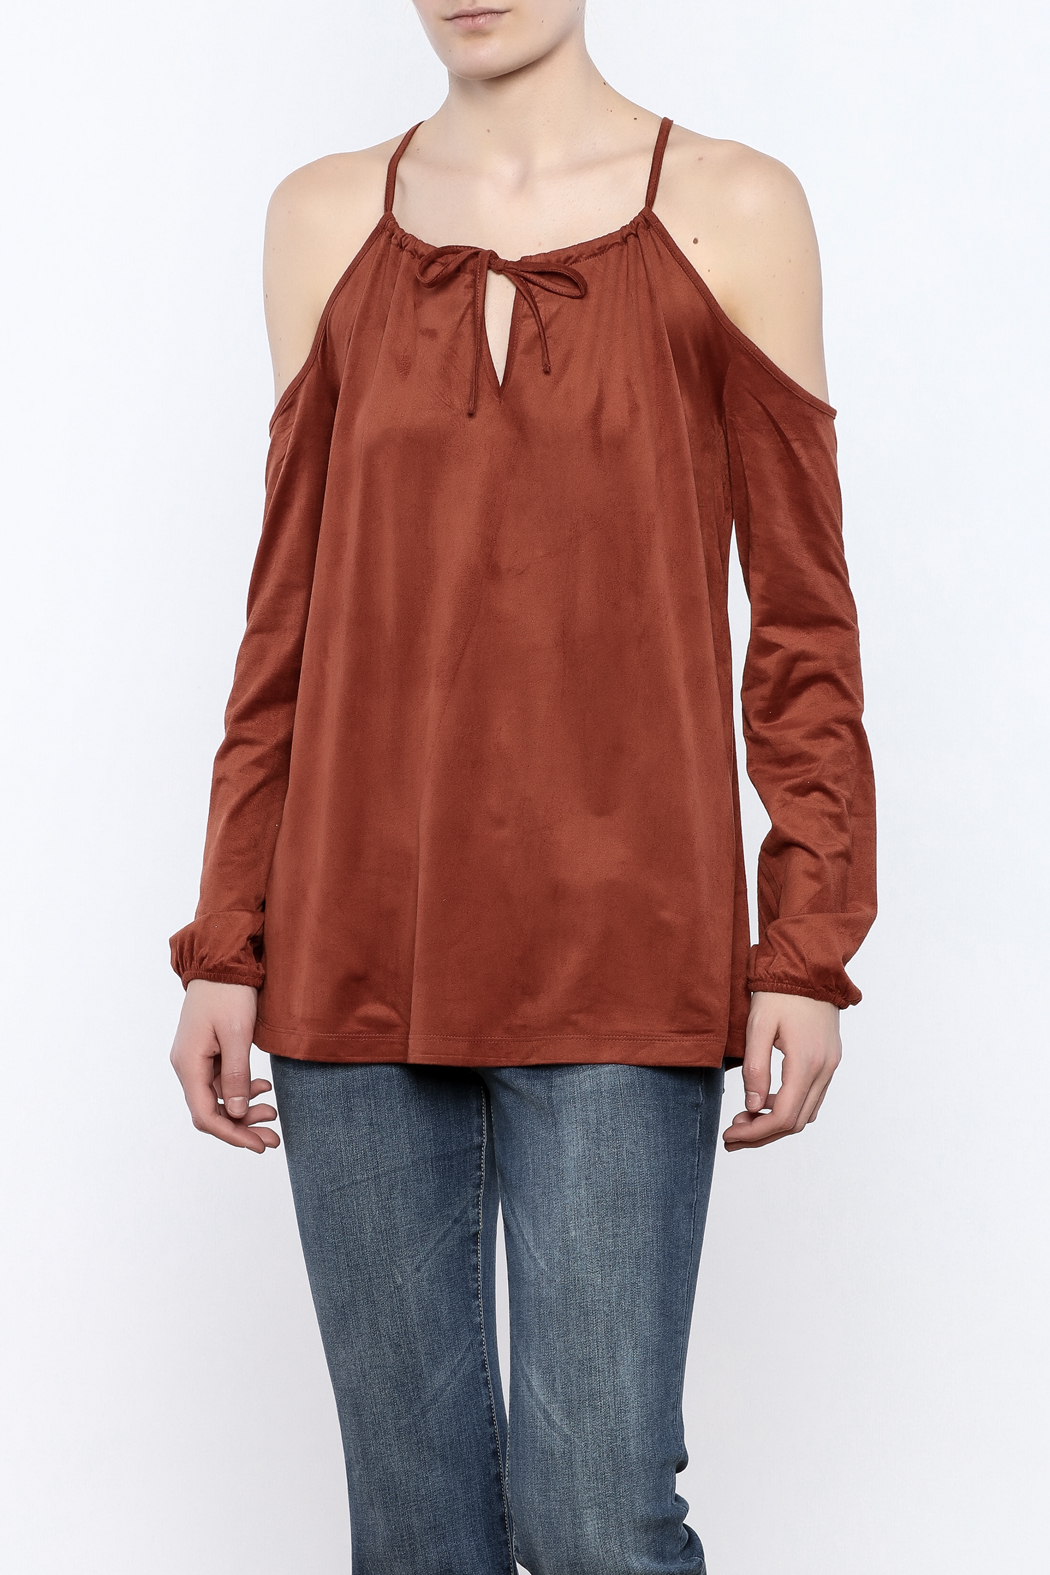 Lumiere Rust Cold Shoulder Top - Main Image